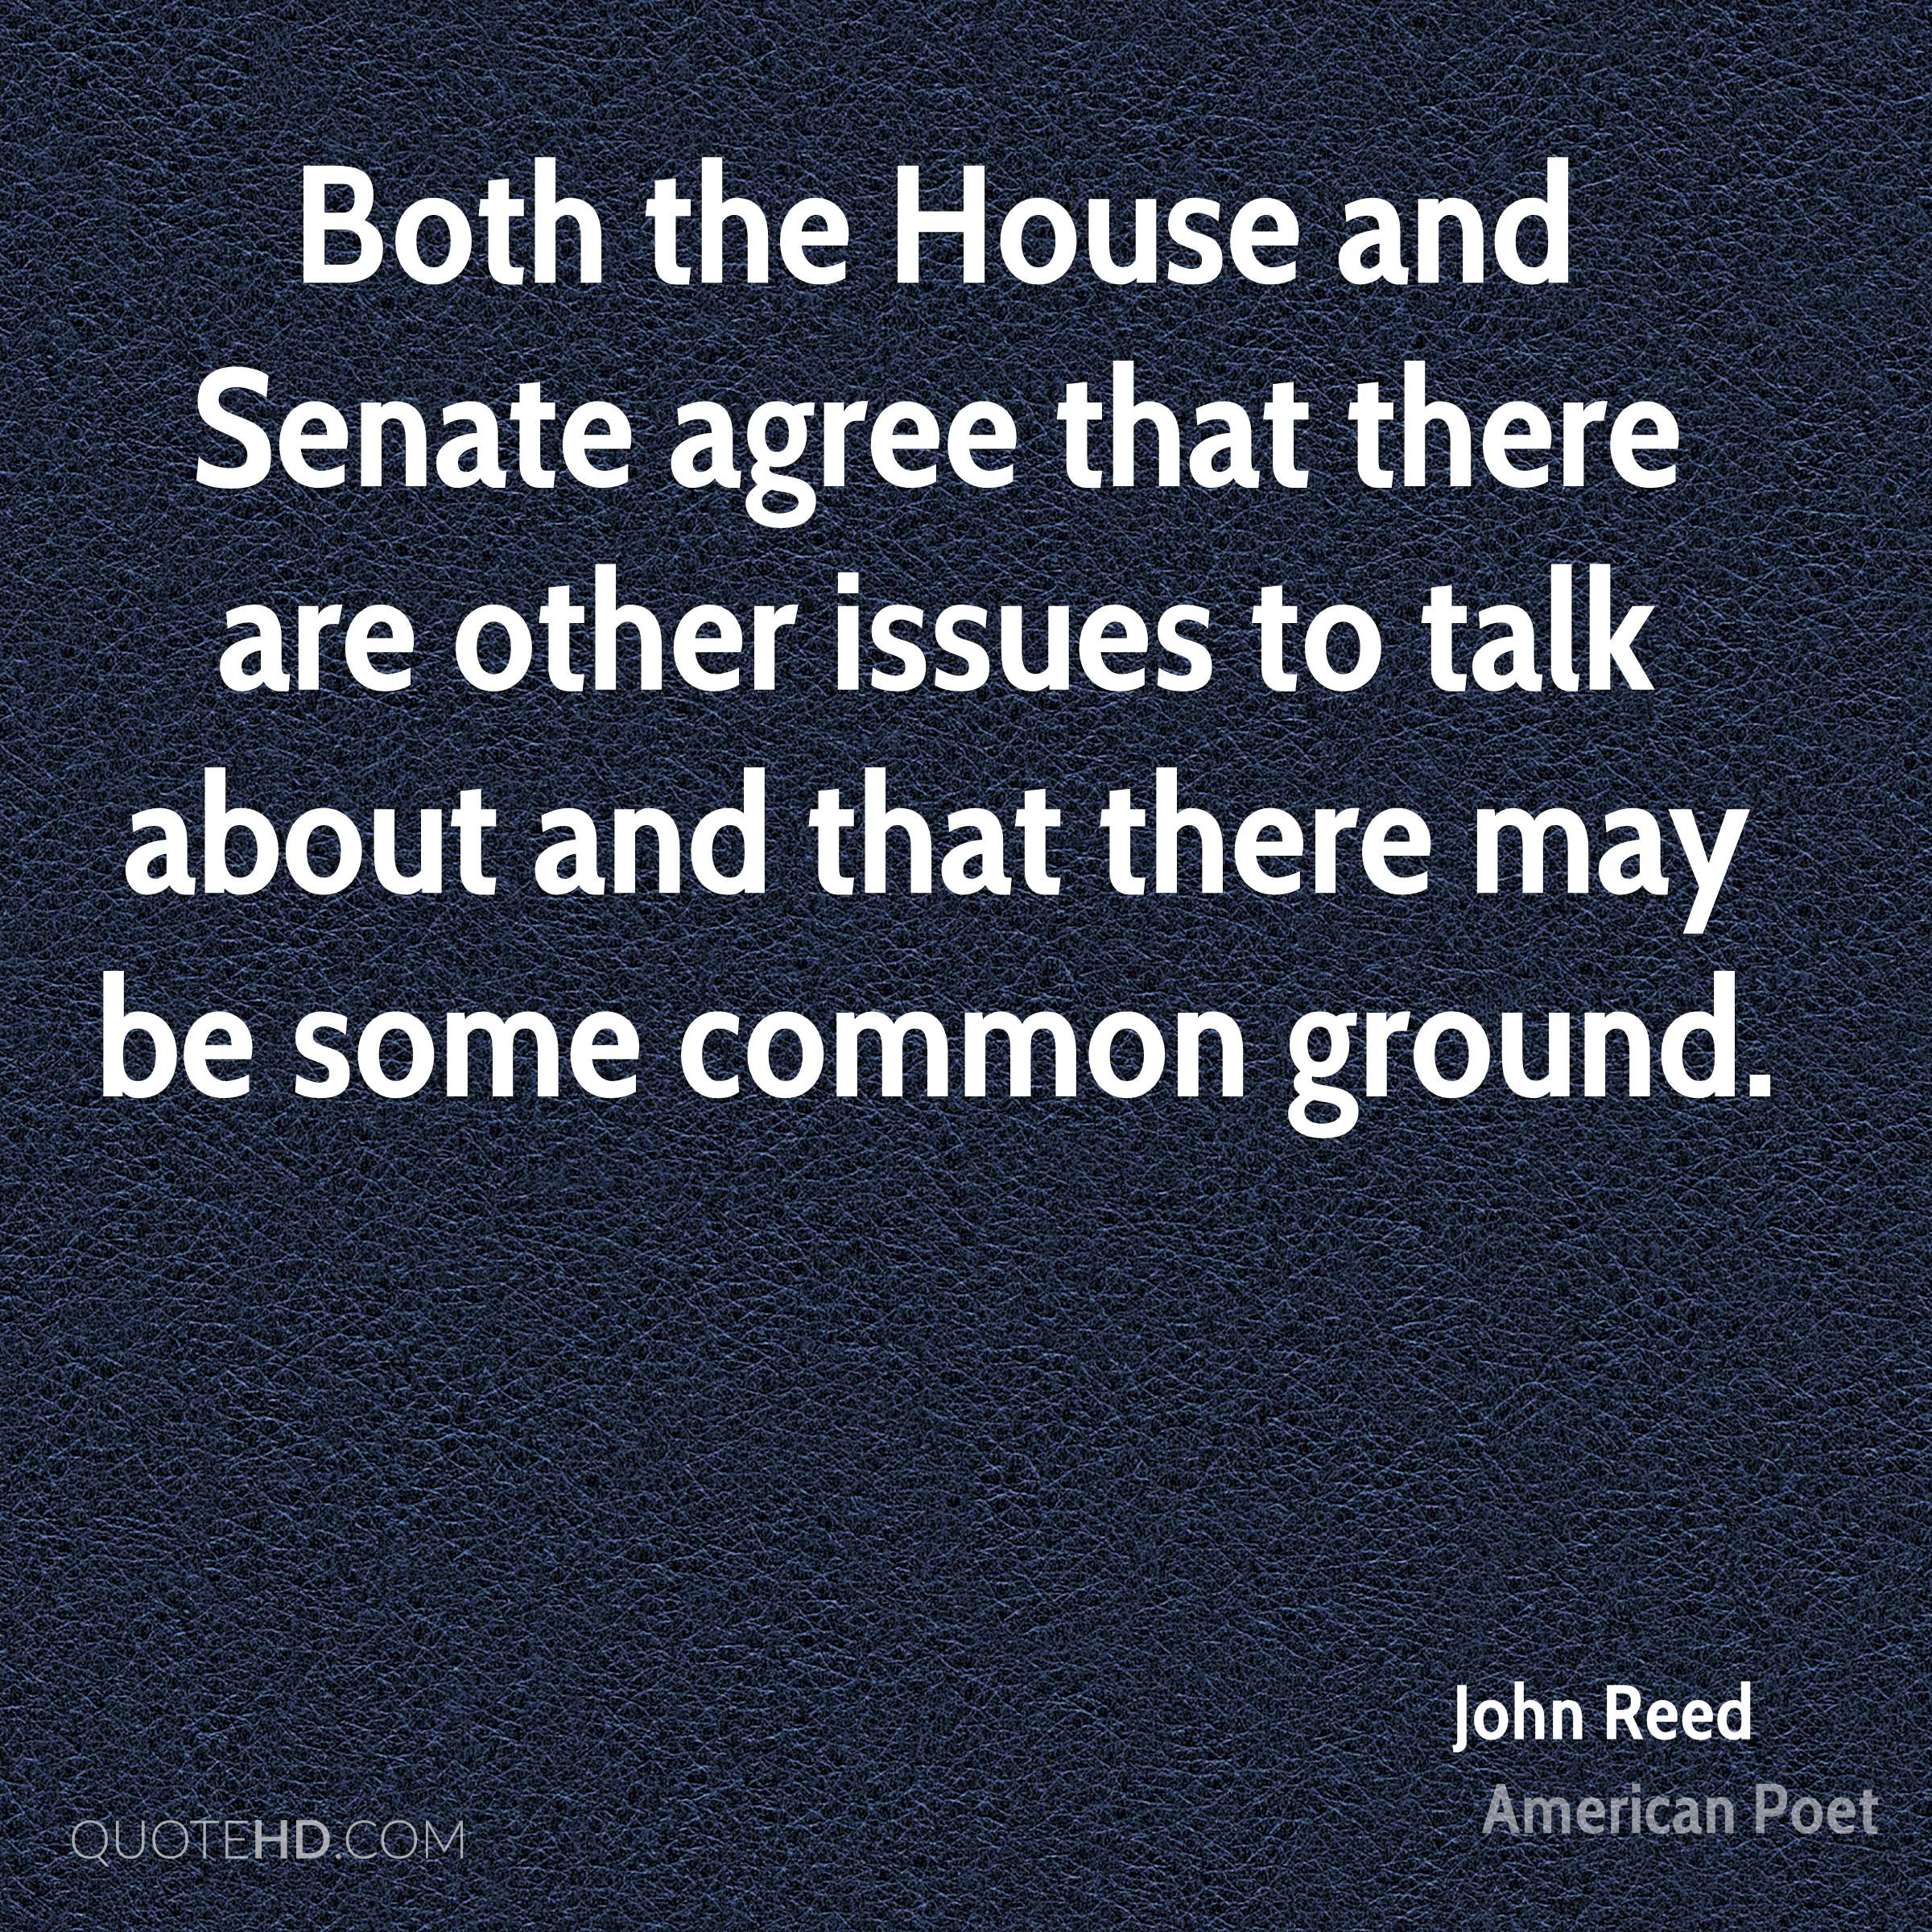 Both the House and Senate agree that there are other issues to talk about and that there may be some common ground.